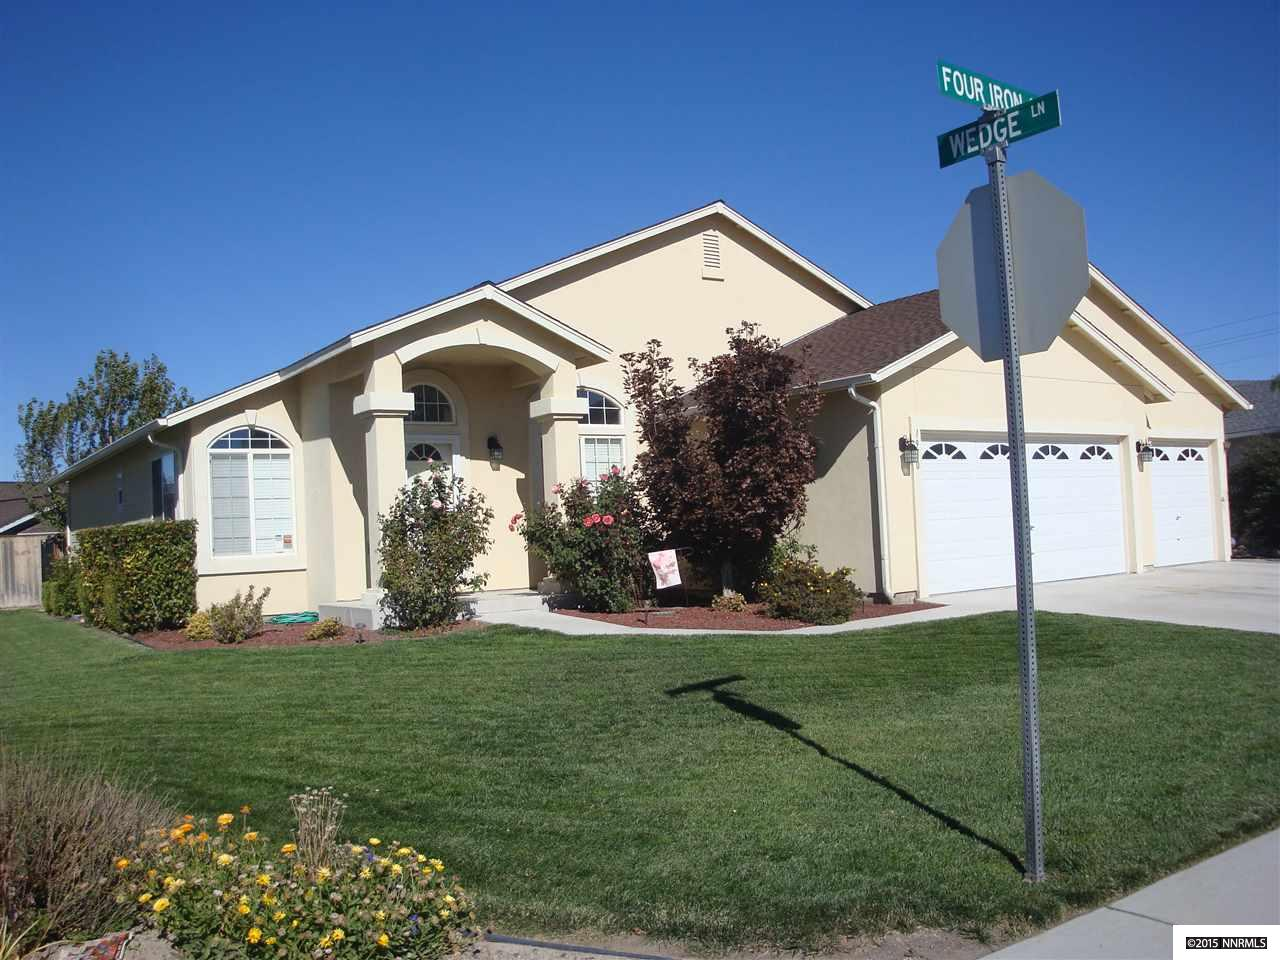 1940 Four Iron Ct, Fernley, NV